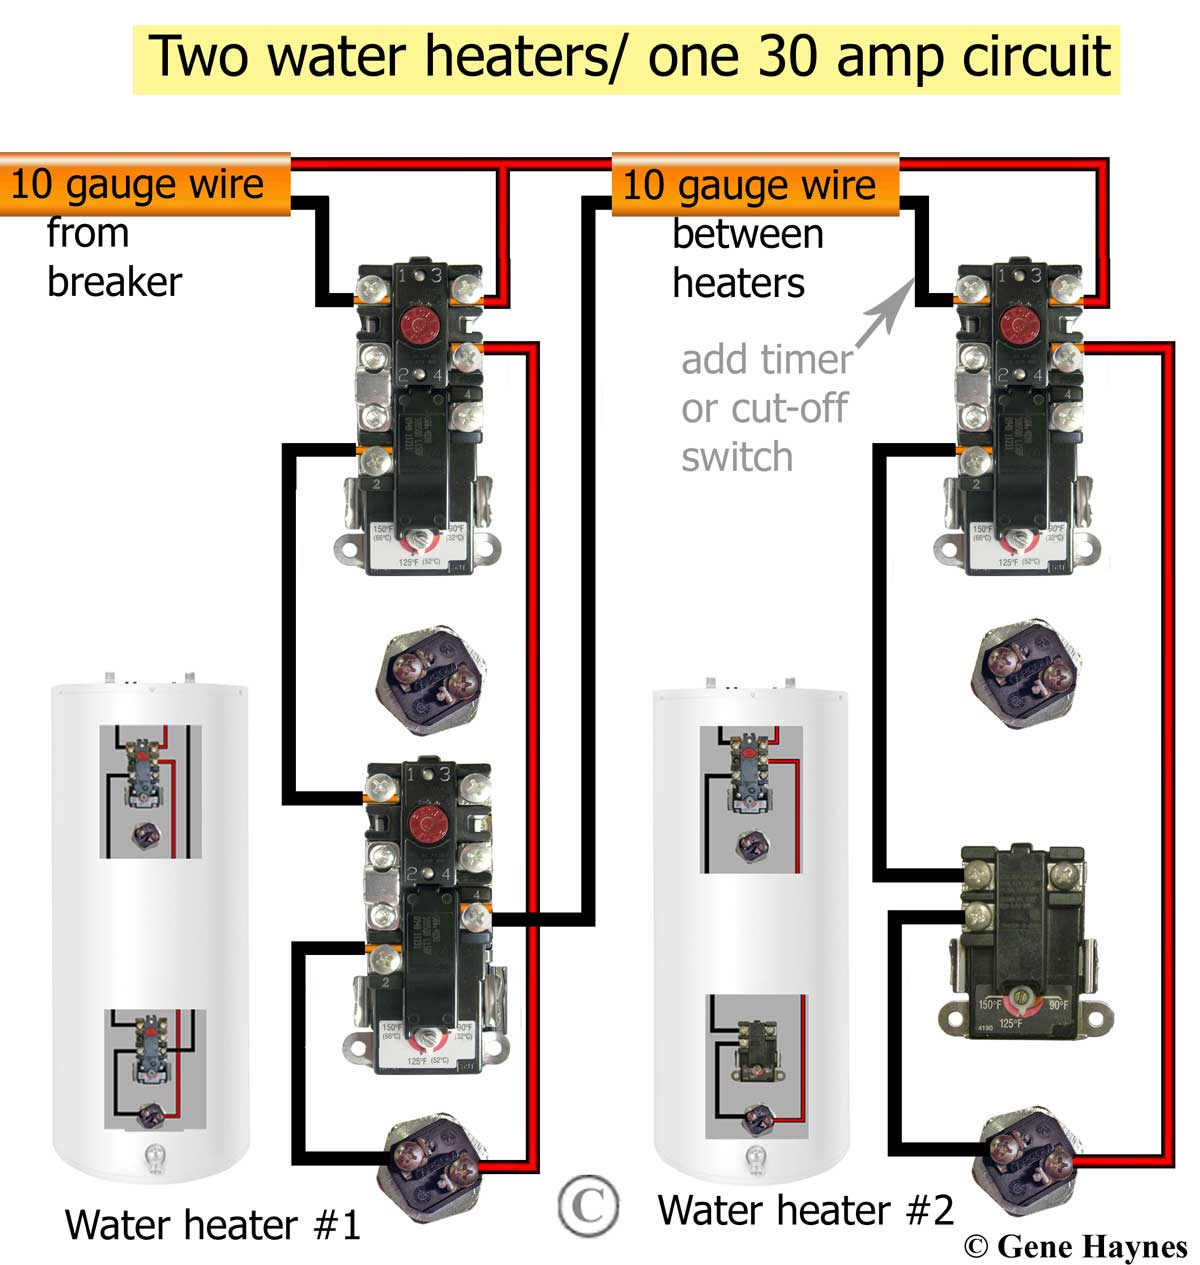 How To Wire Water Heater Thermostats 30 Amp 2 Pole Breaker Wiring Diagram Larger Image Redundant Control